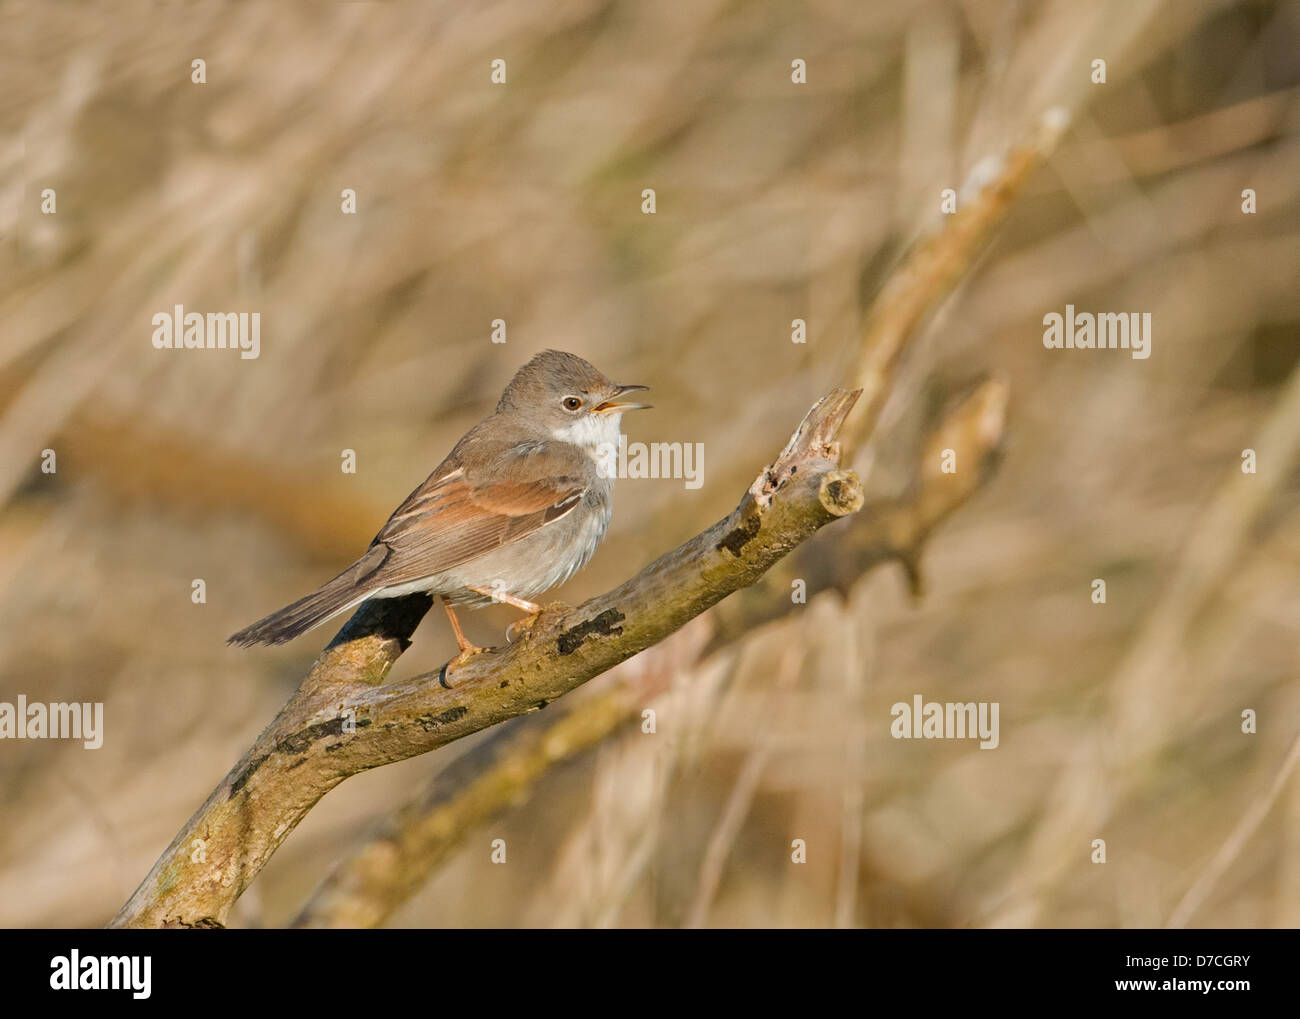 WHITETHROAT (SYLVIA COMMUNIS) IN SONG. SPRING. UK - Stock Image